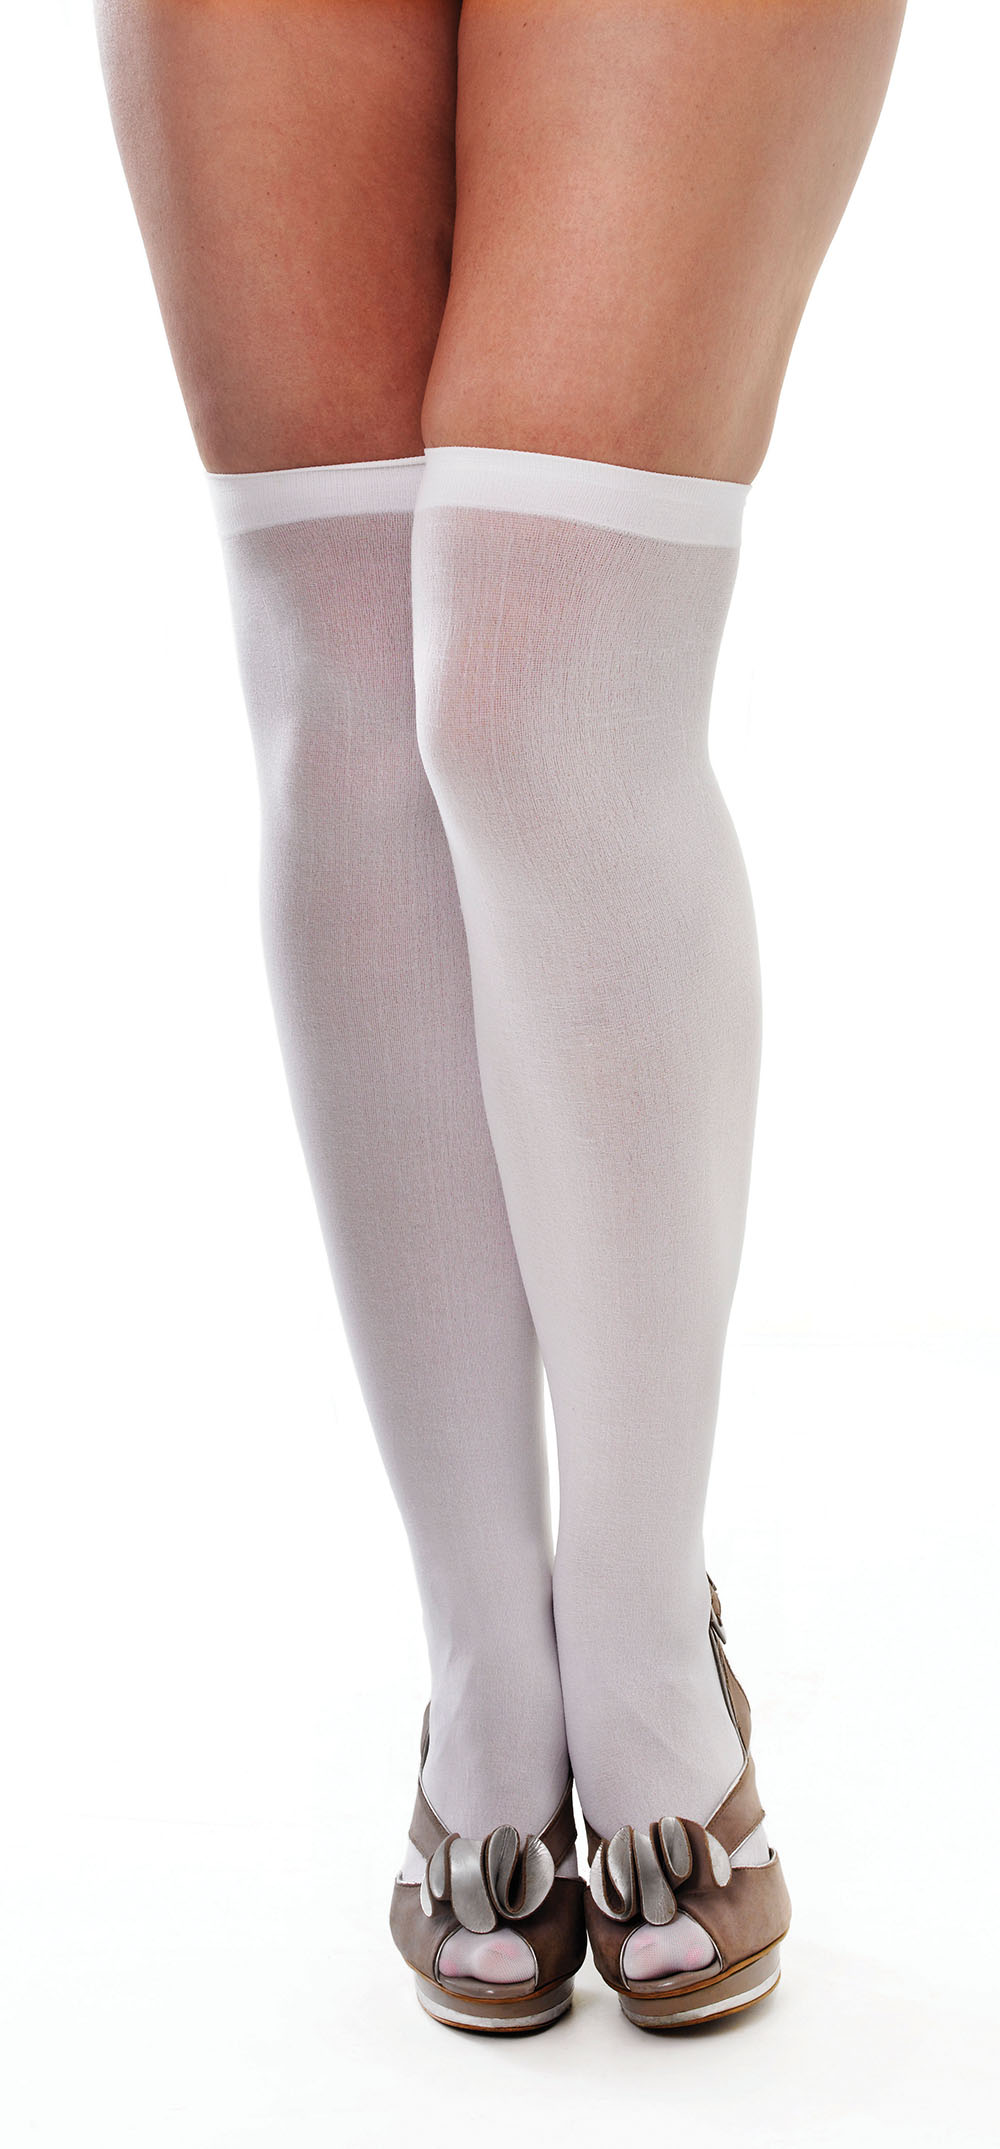 White_hold_up_stockings